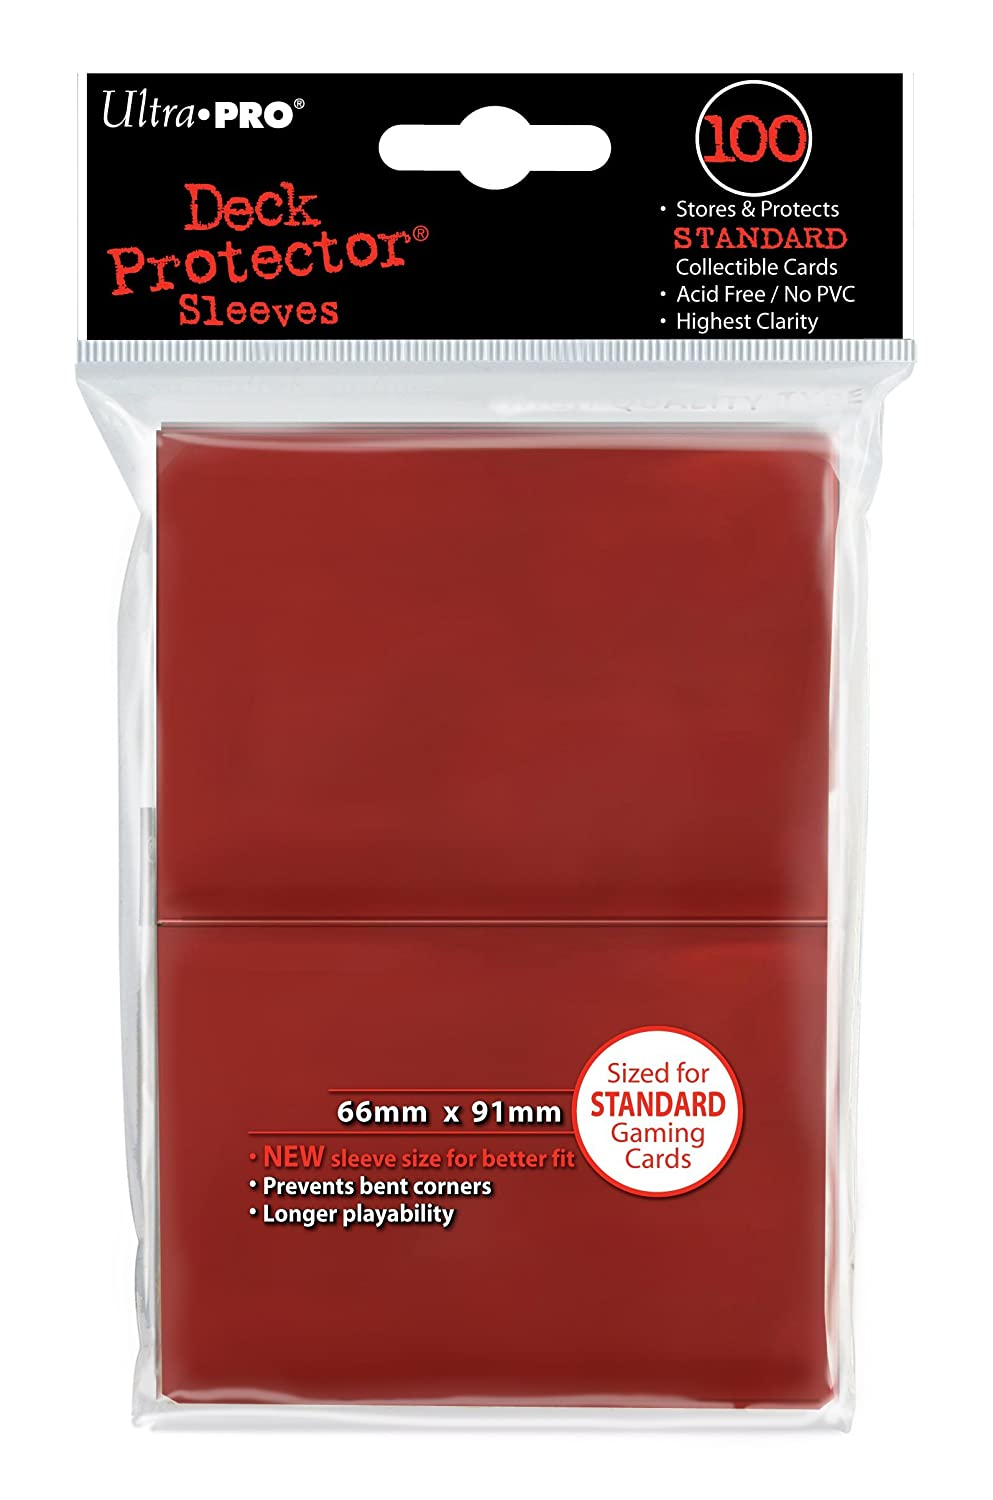 Ultra Pro Deck Protector, Standard, Red, 100 Count 82694